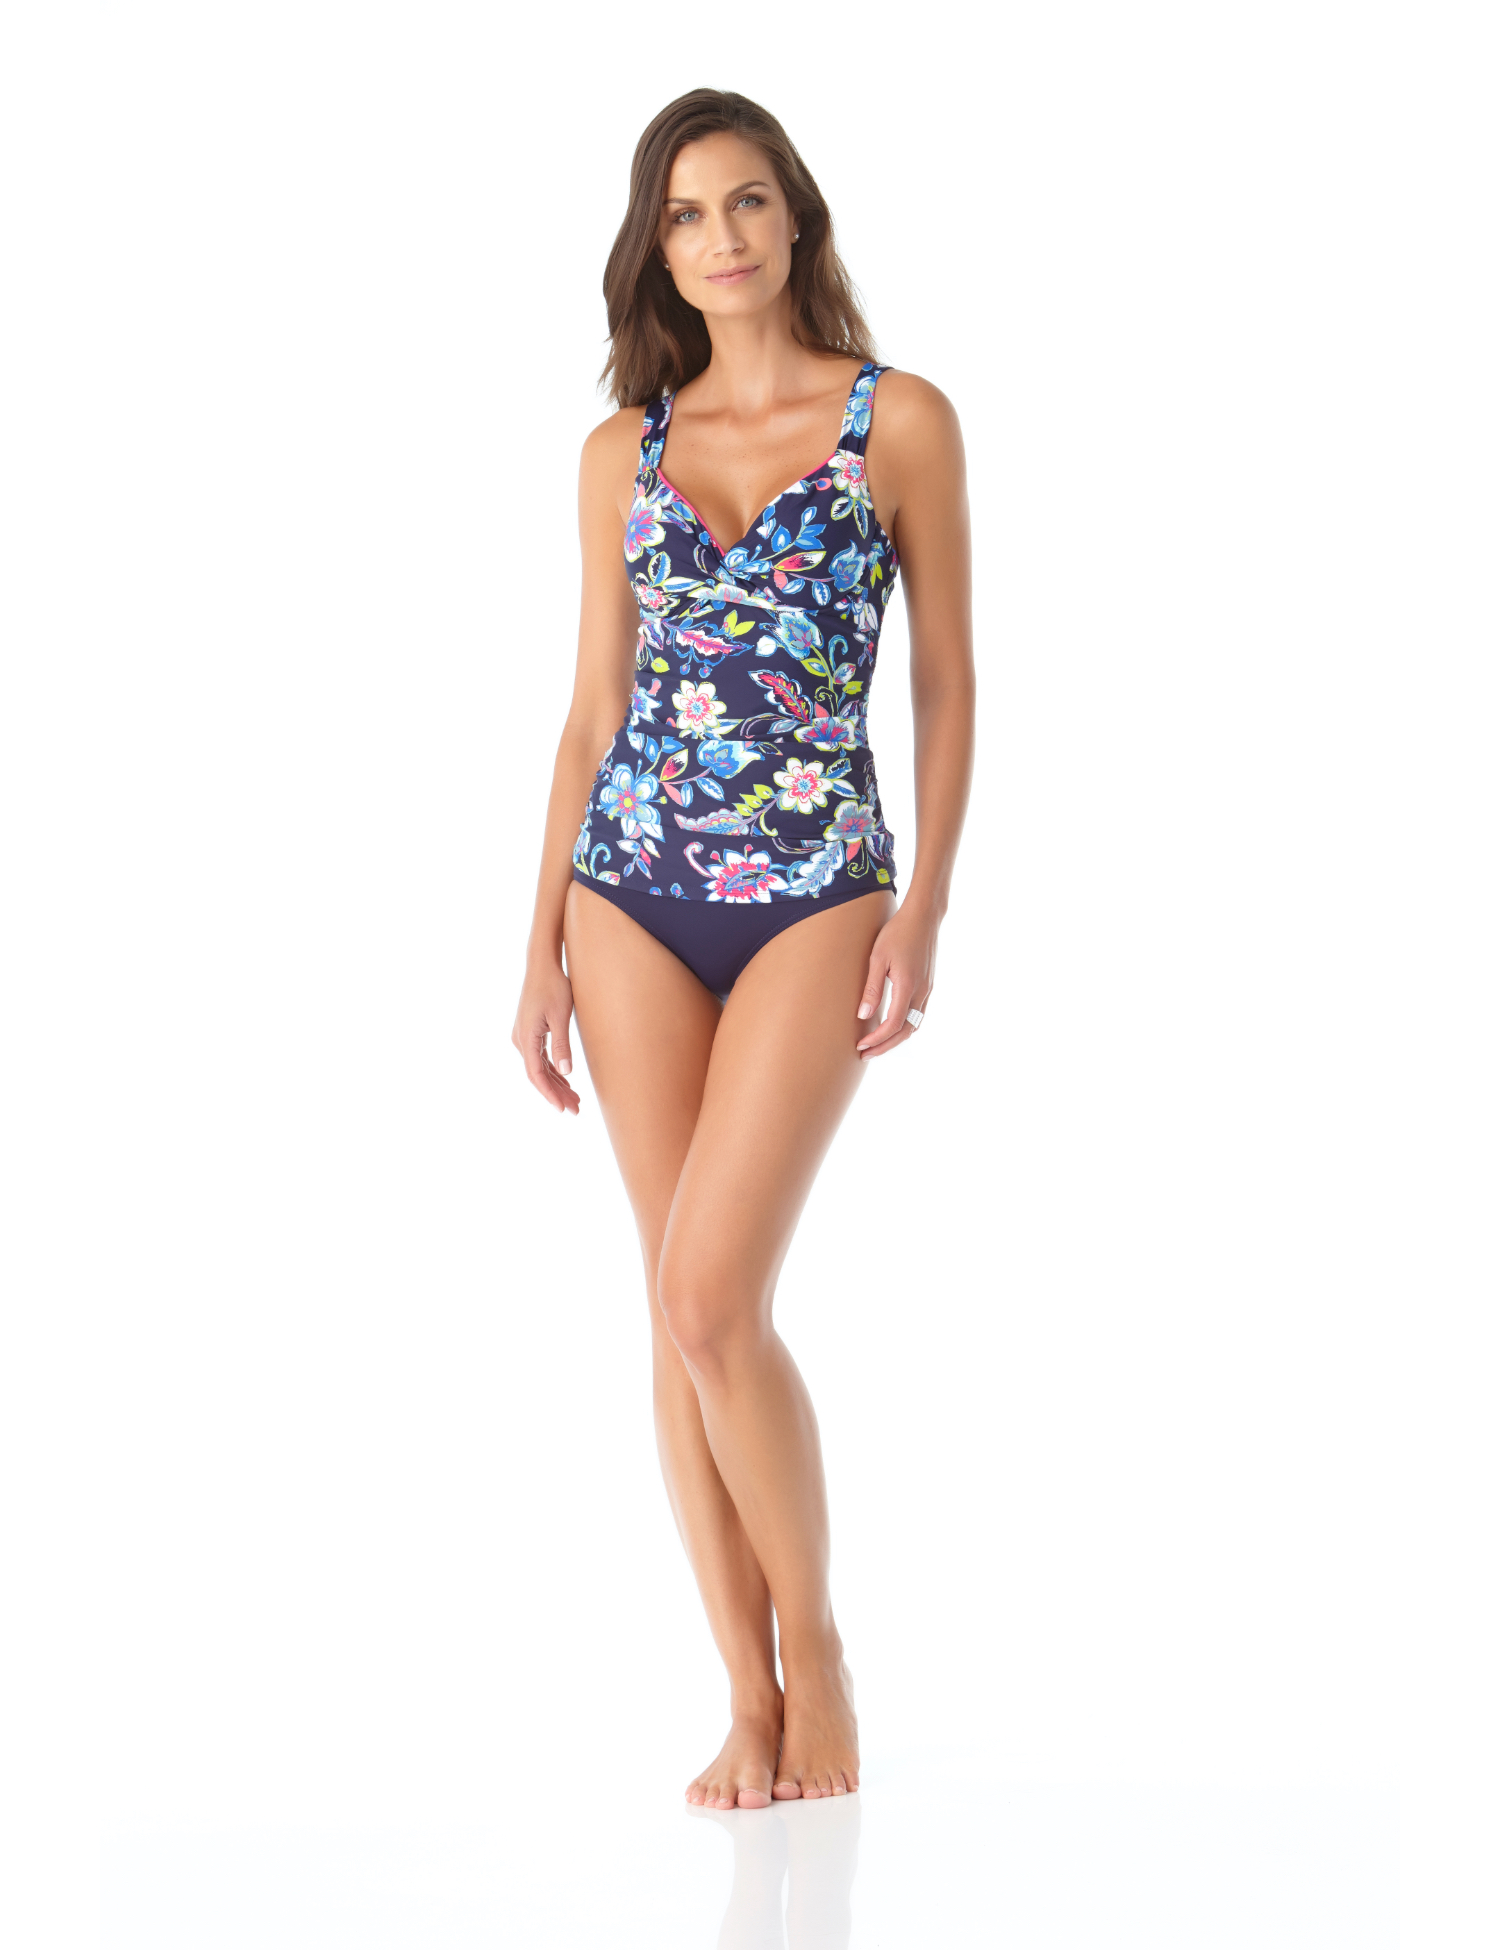 Anne Cole® Holiday Paisley Underwire Tankini Swimsuit Top -Multi - Front